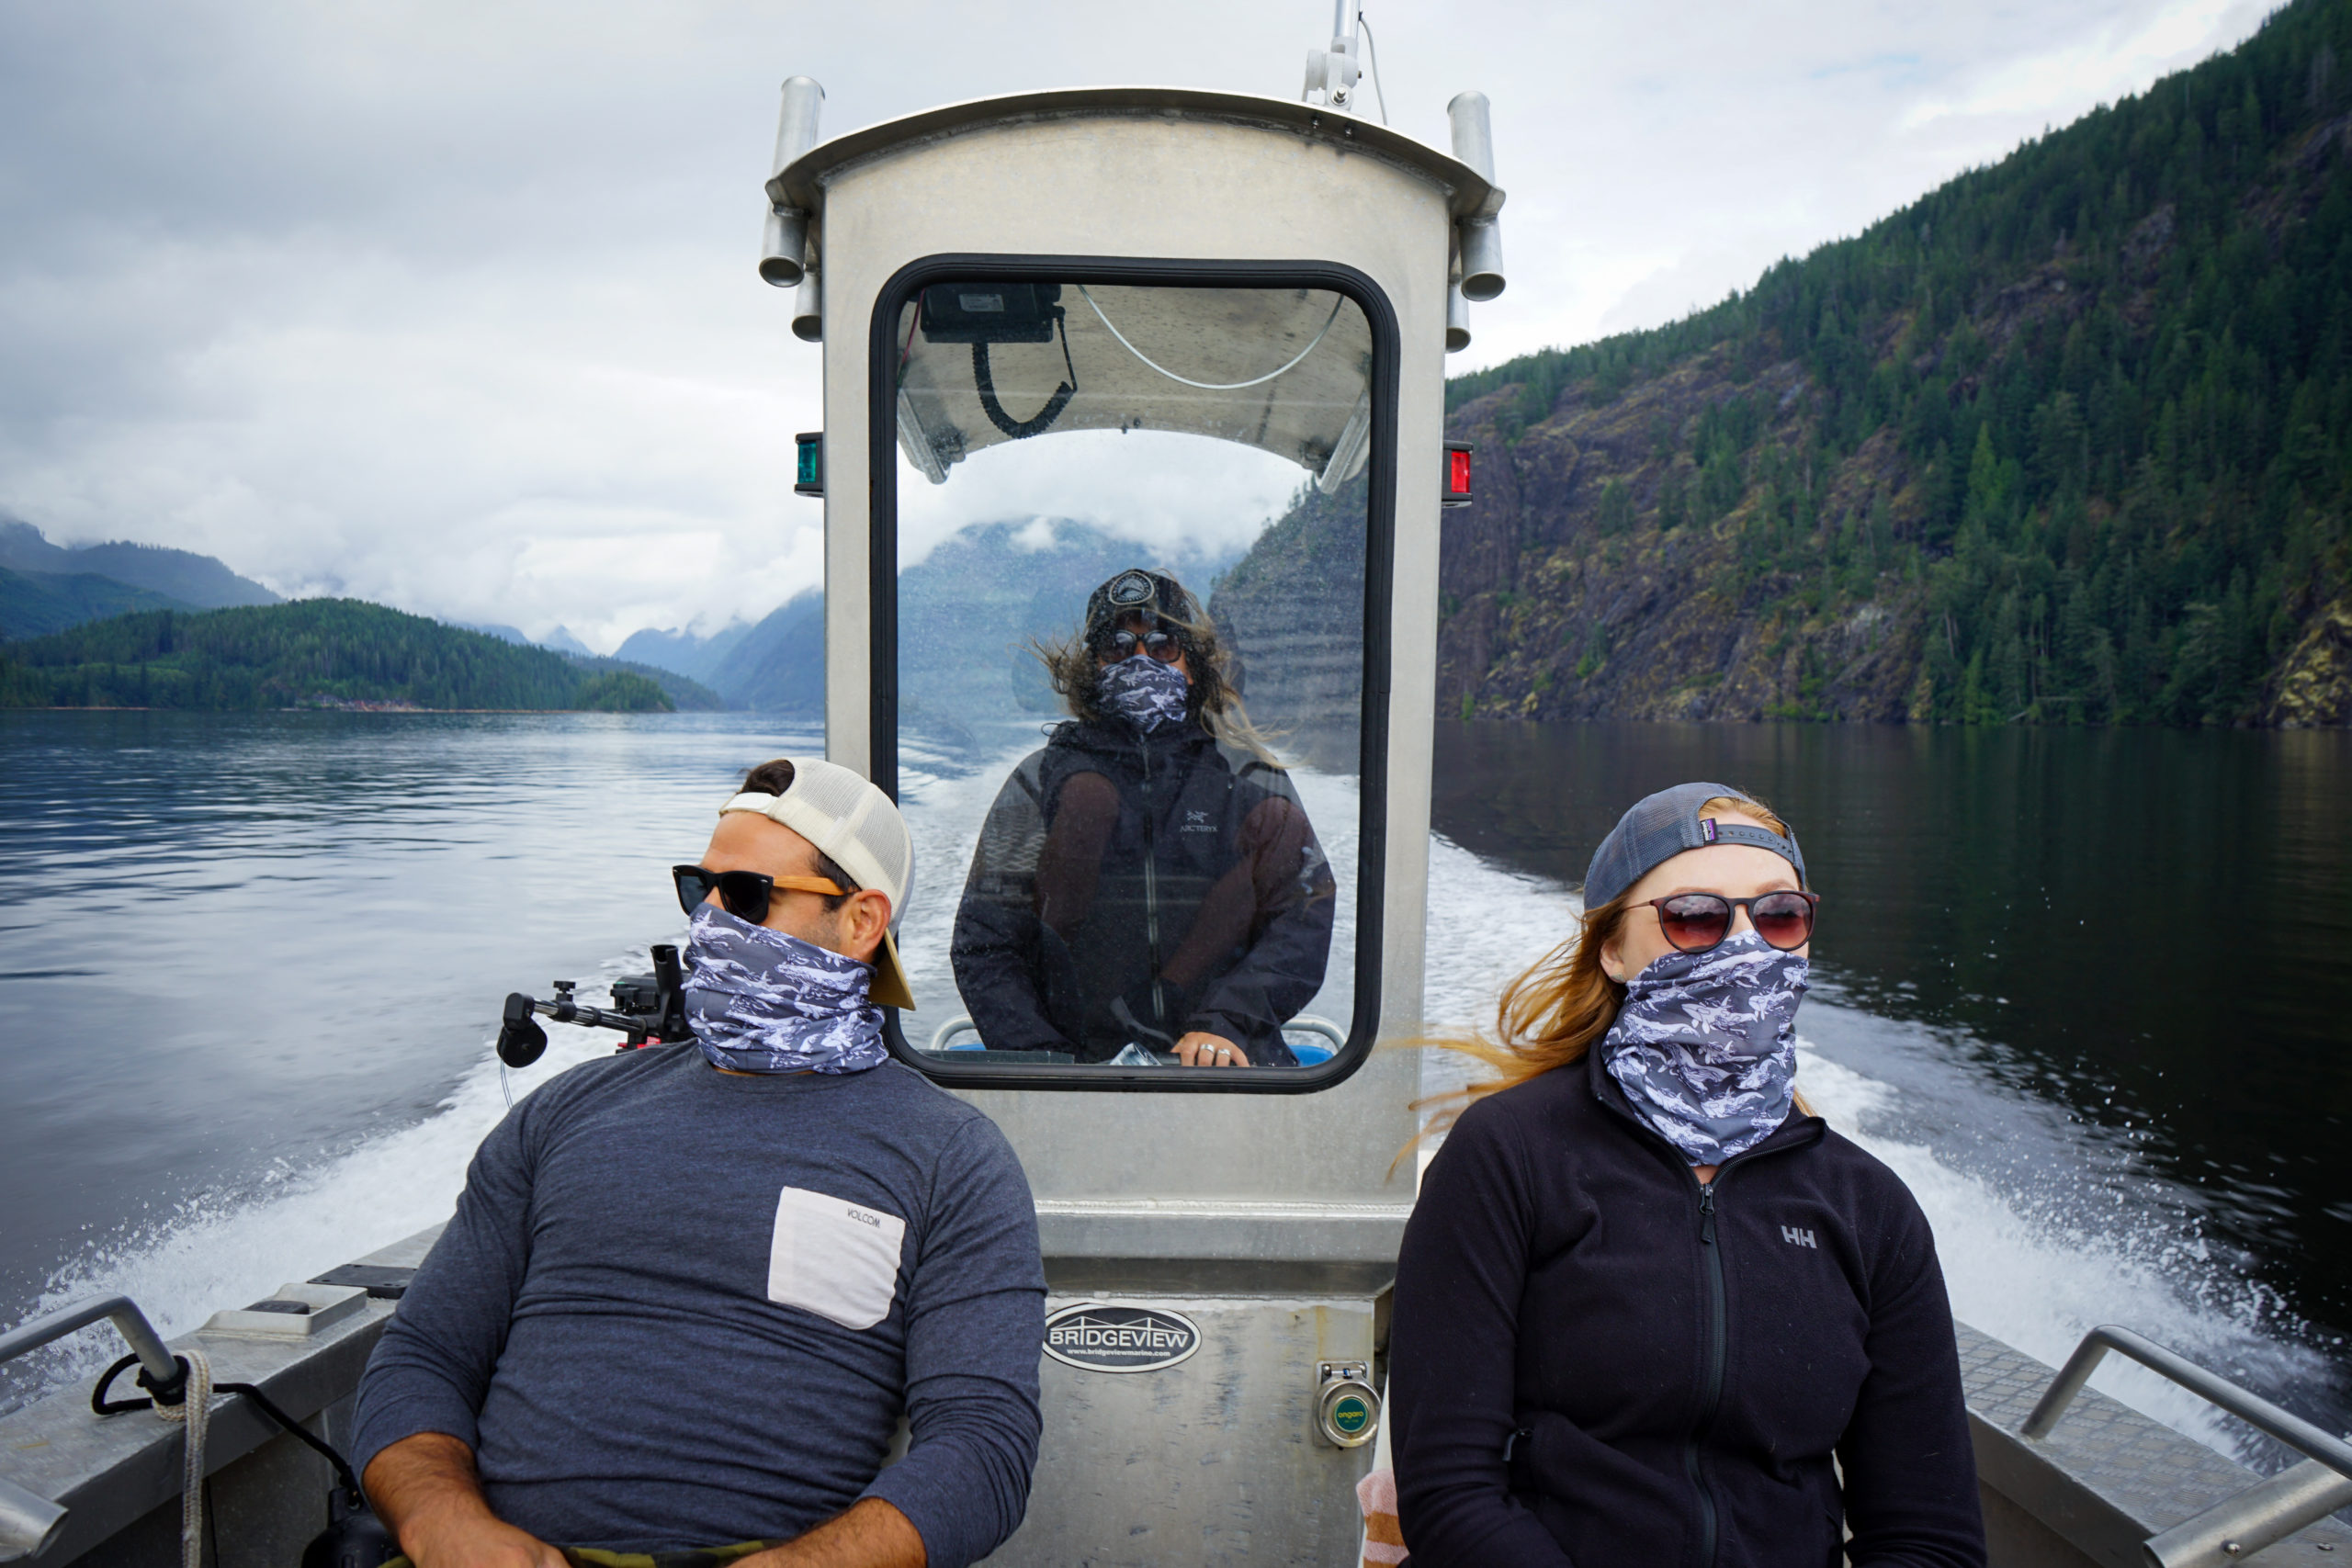 Wearing face coverings on an adventure tour